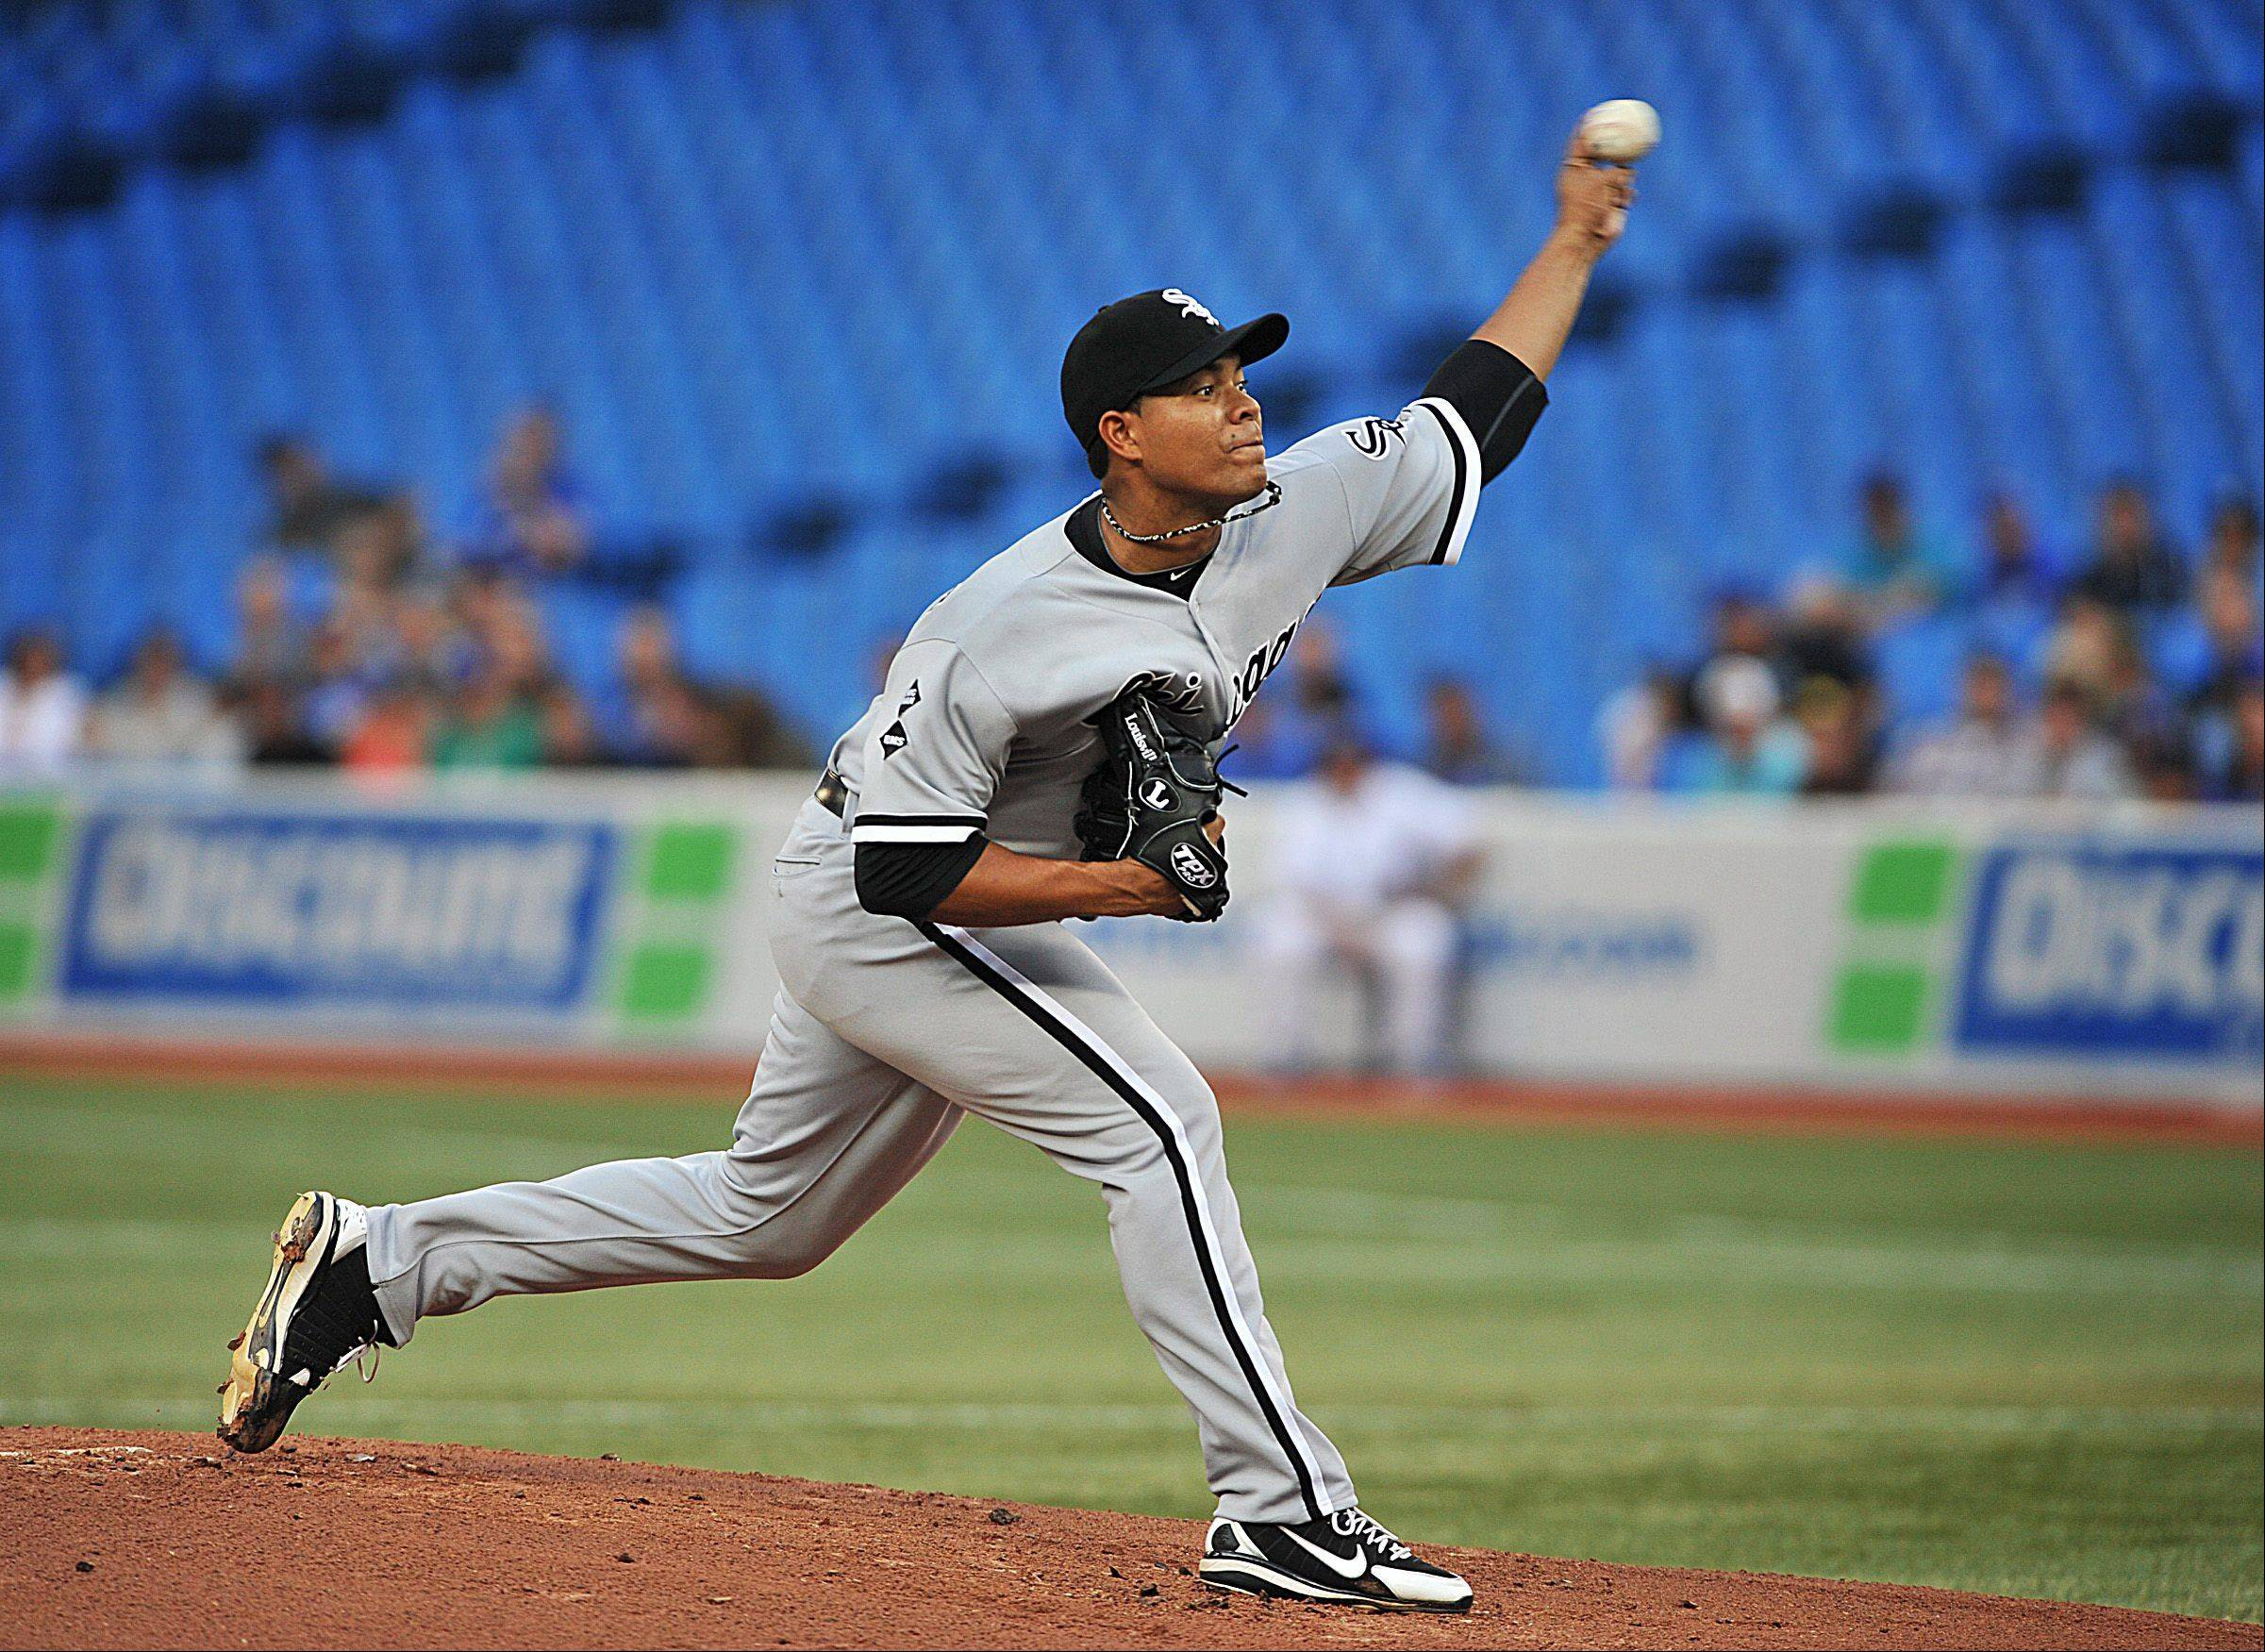 White Sox pitcher Jose Quintana pitches against the Toronto Blue Jays Tuesday during first inning in Toronto.